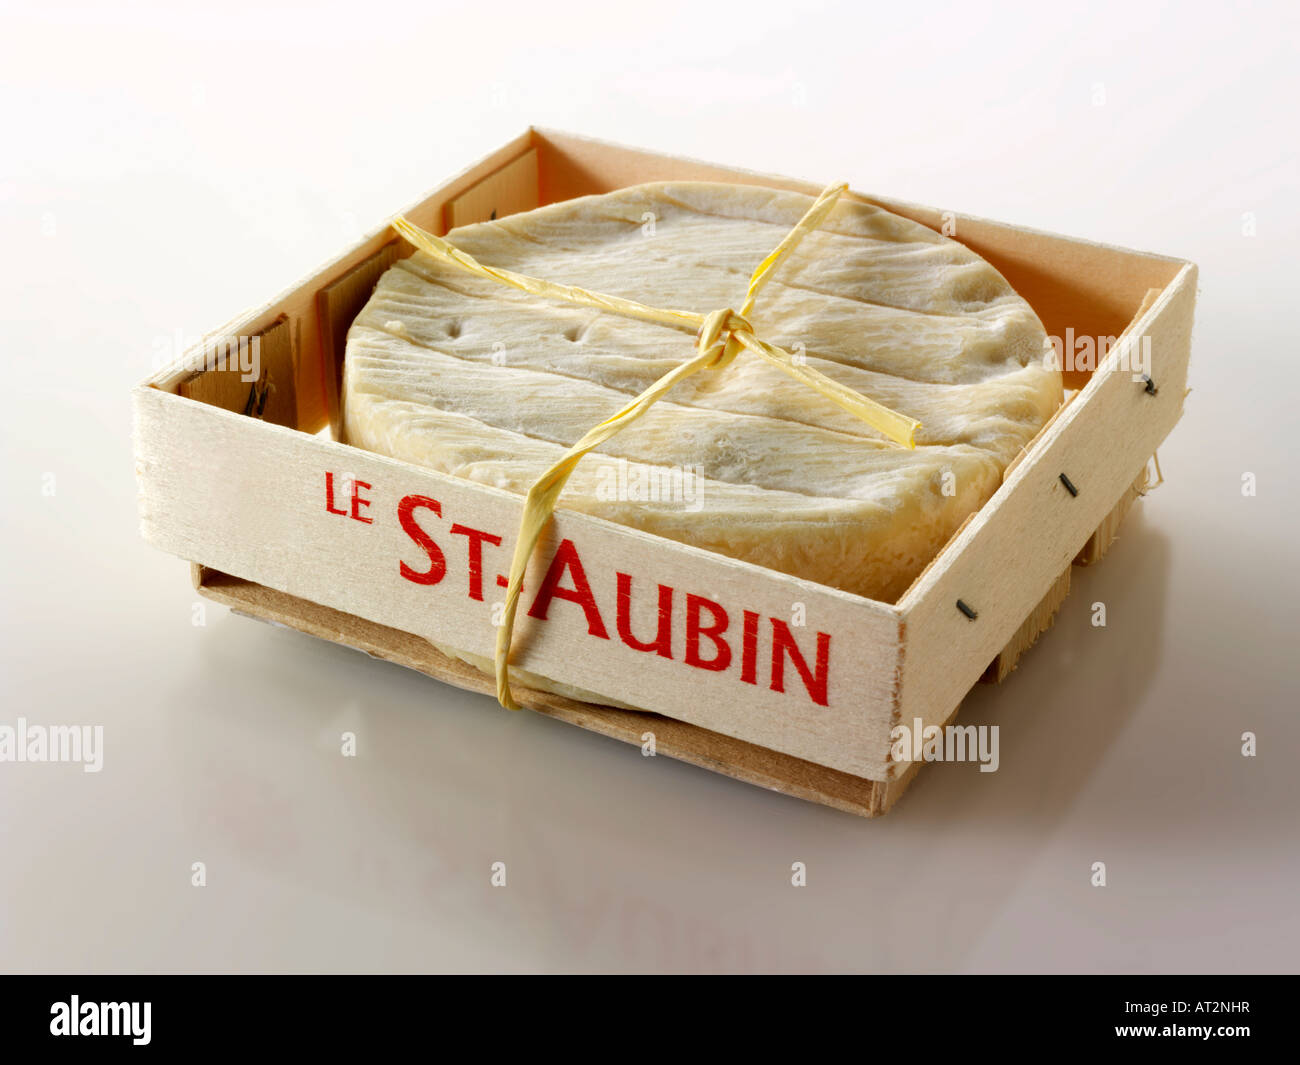 St Aubin soft French cheese on a white background - Stock Image